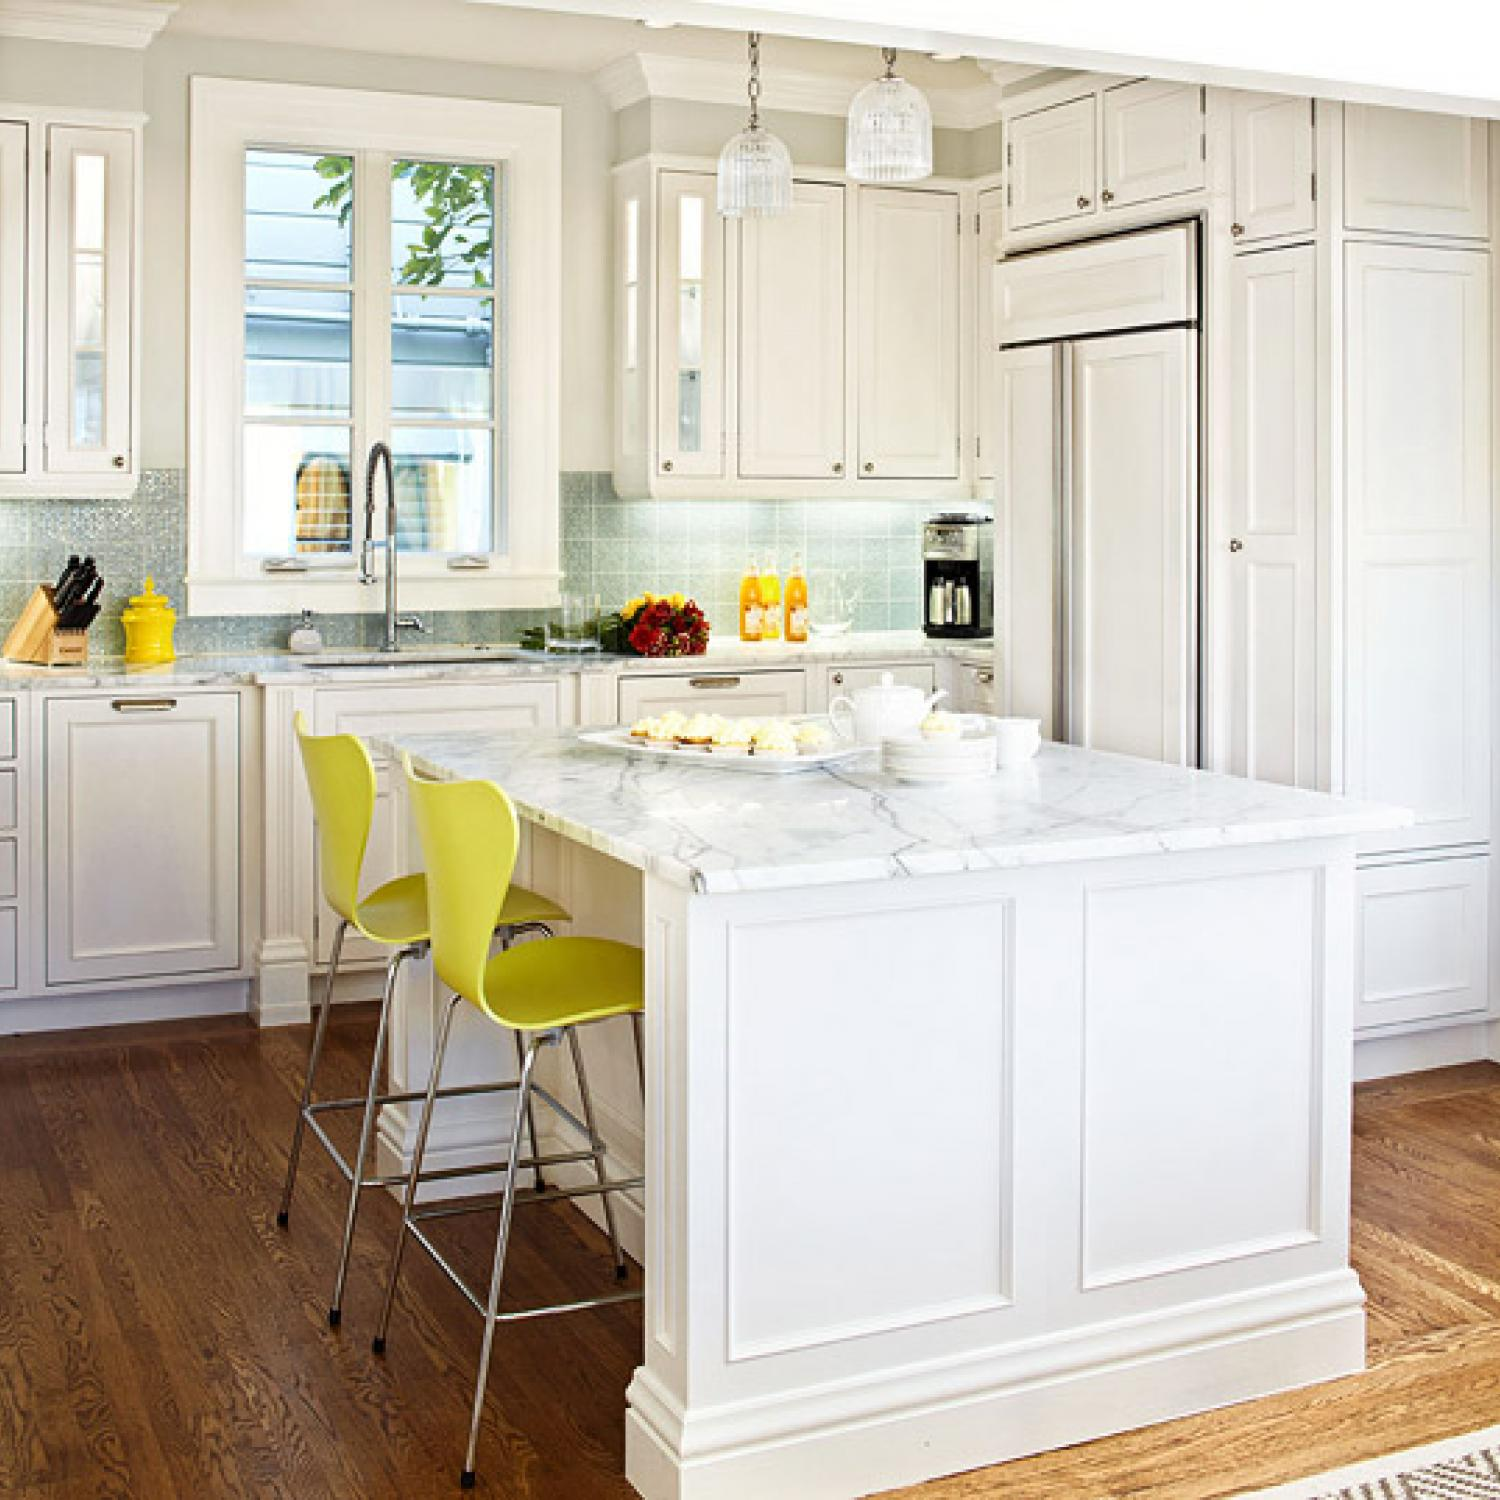 Design ideas for white kitchens traditional home for Traditional white kitchen cabinets